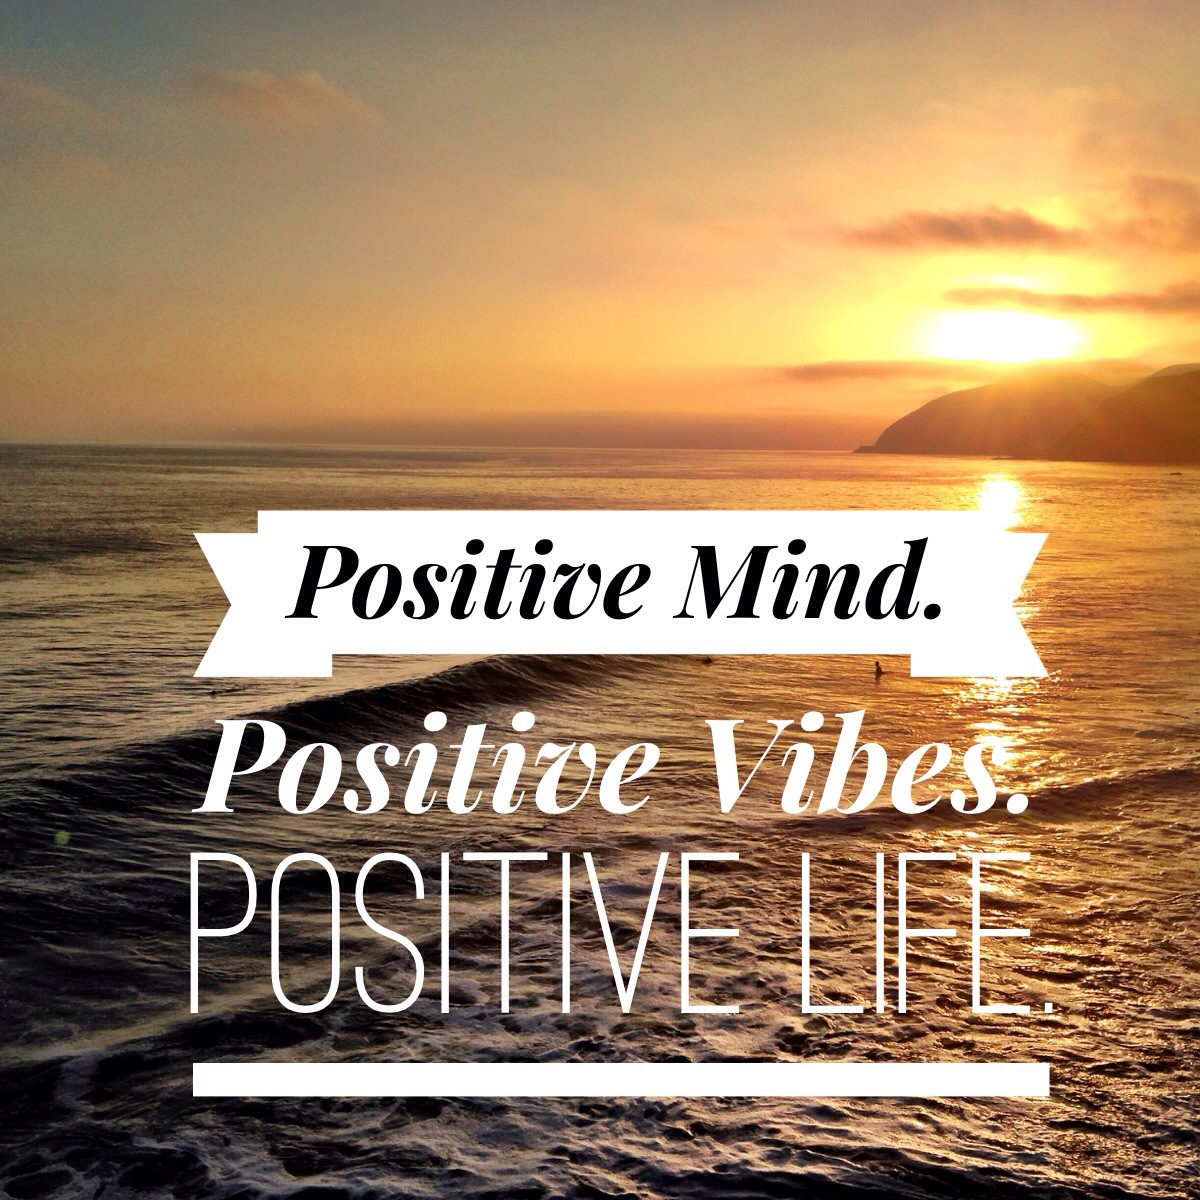 Inspirational Day Quotes: Positive Mind Positive Life Quotes. QuotesGram